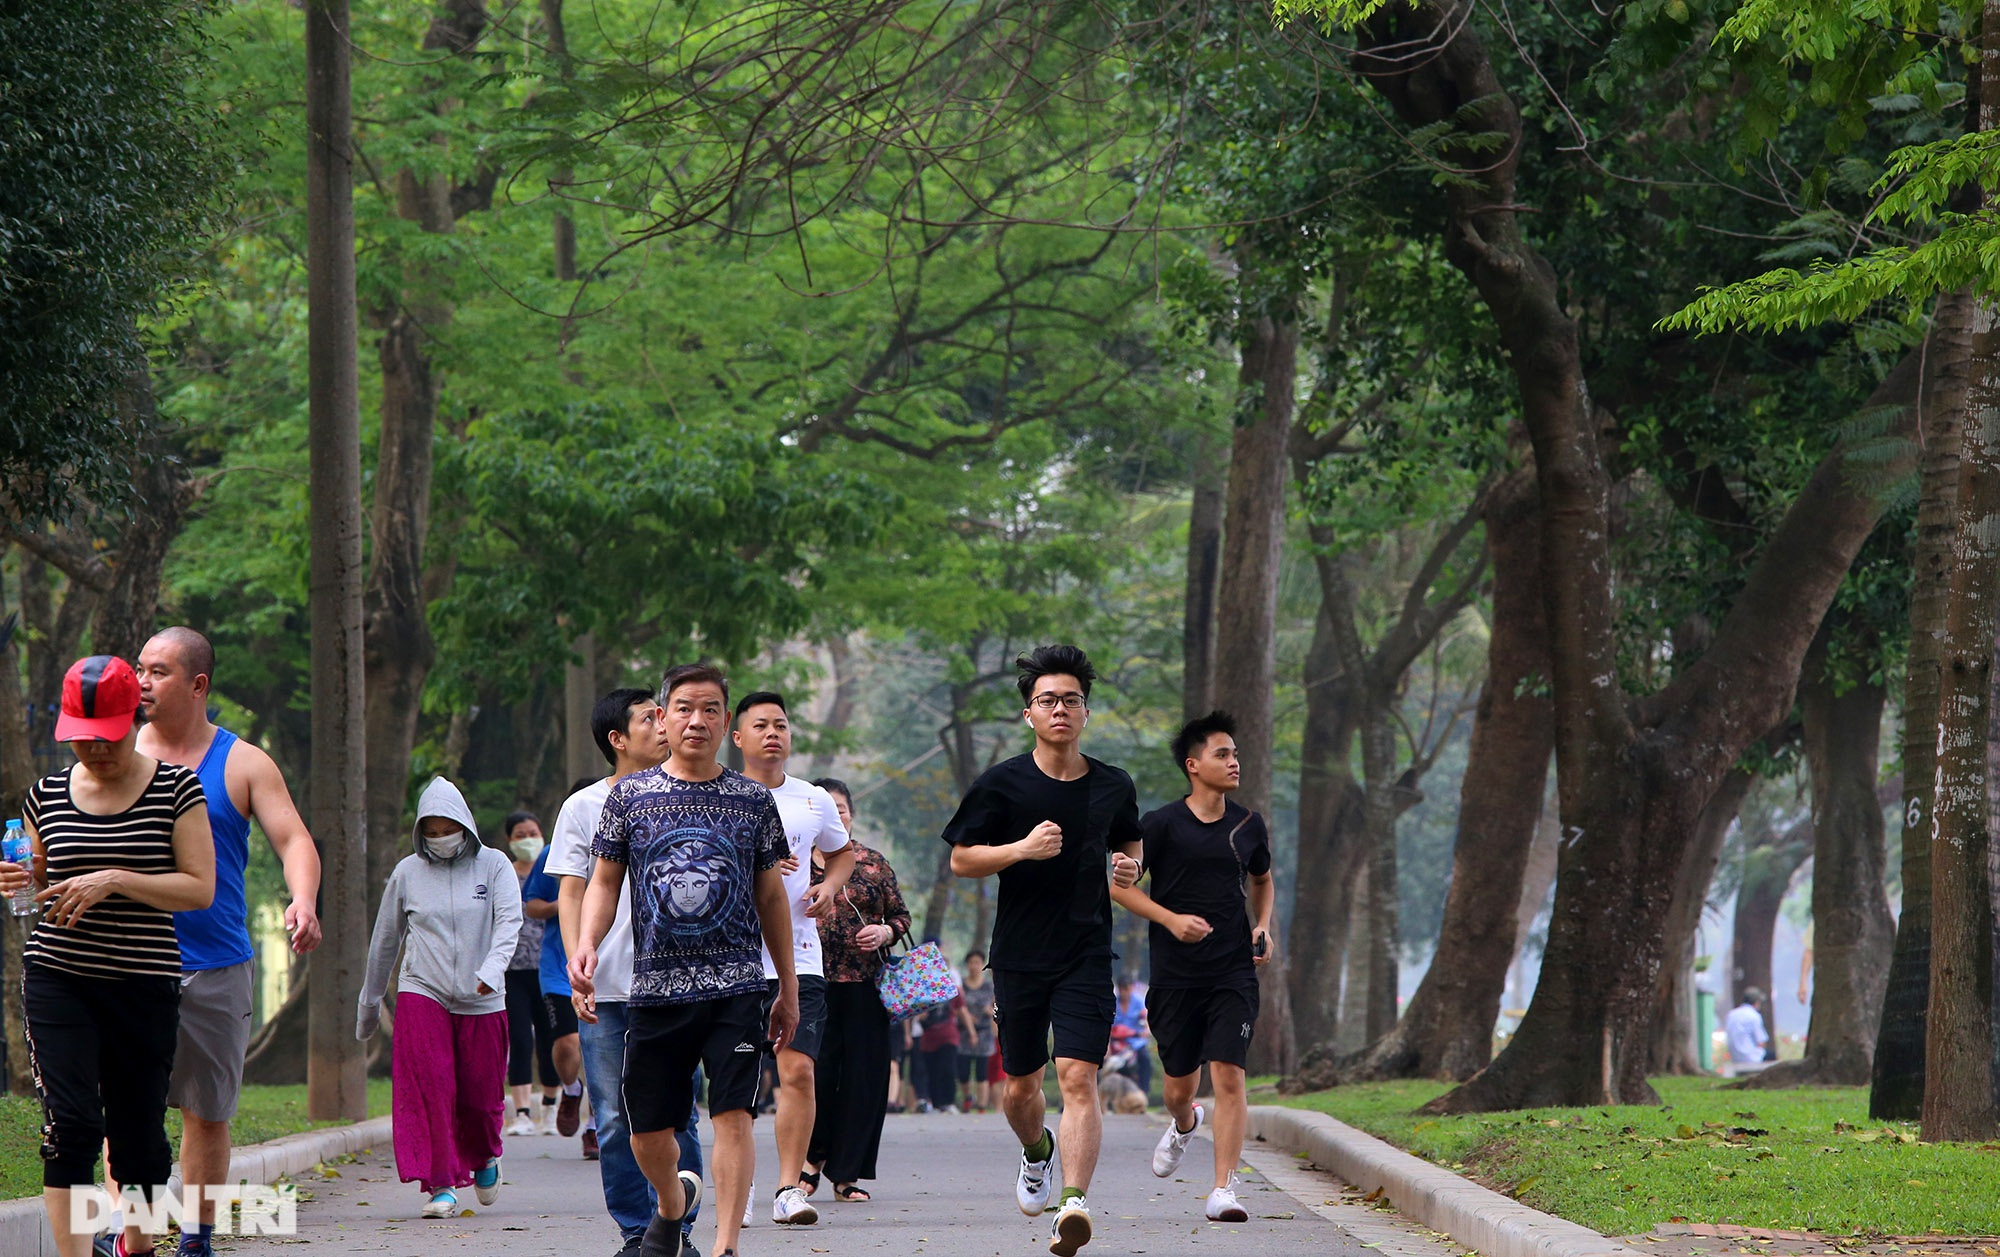 Little-known facts about the largest park in Hanoi about 60 years old - 3